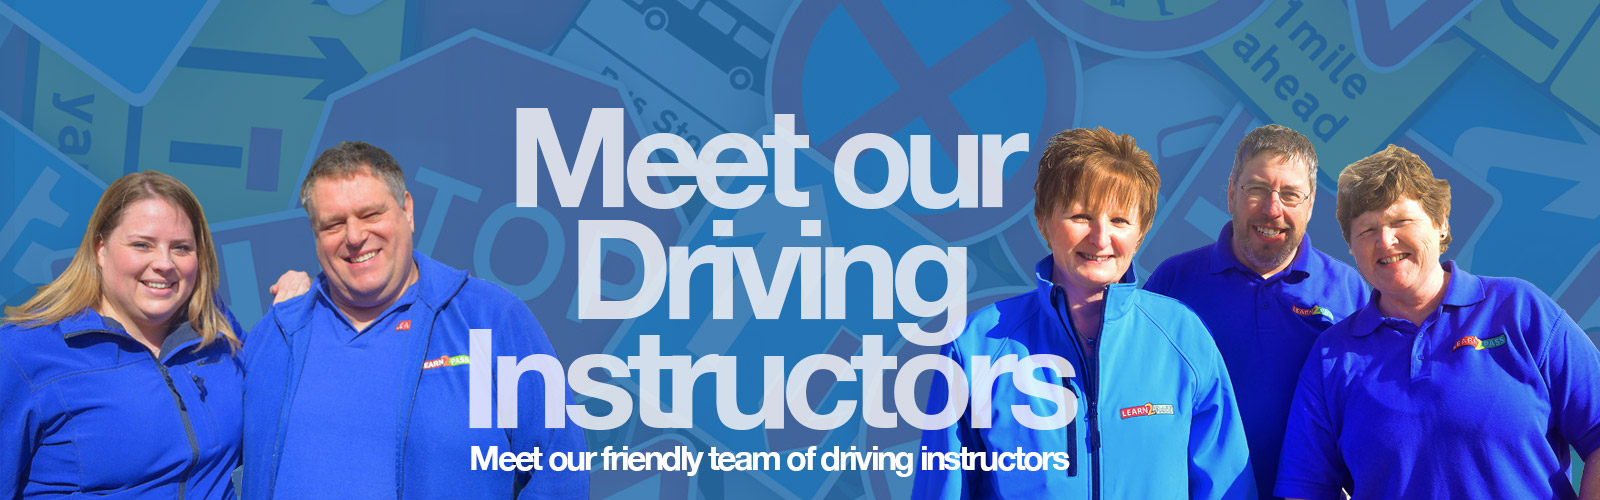 Meet our Driving Instructors Top Image